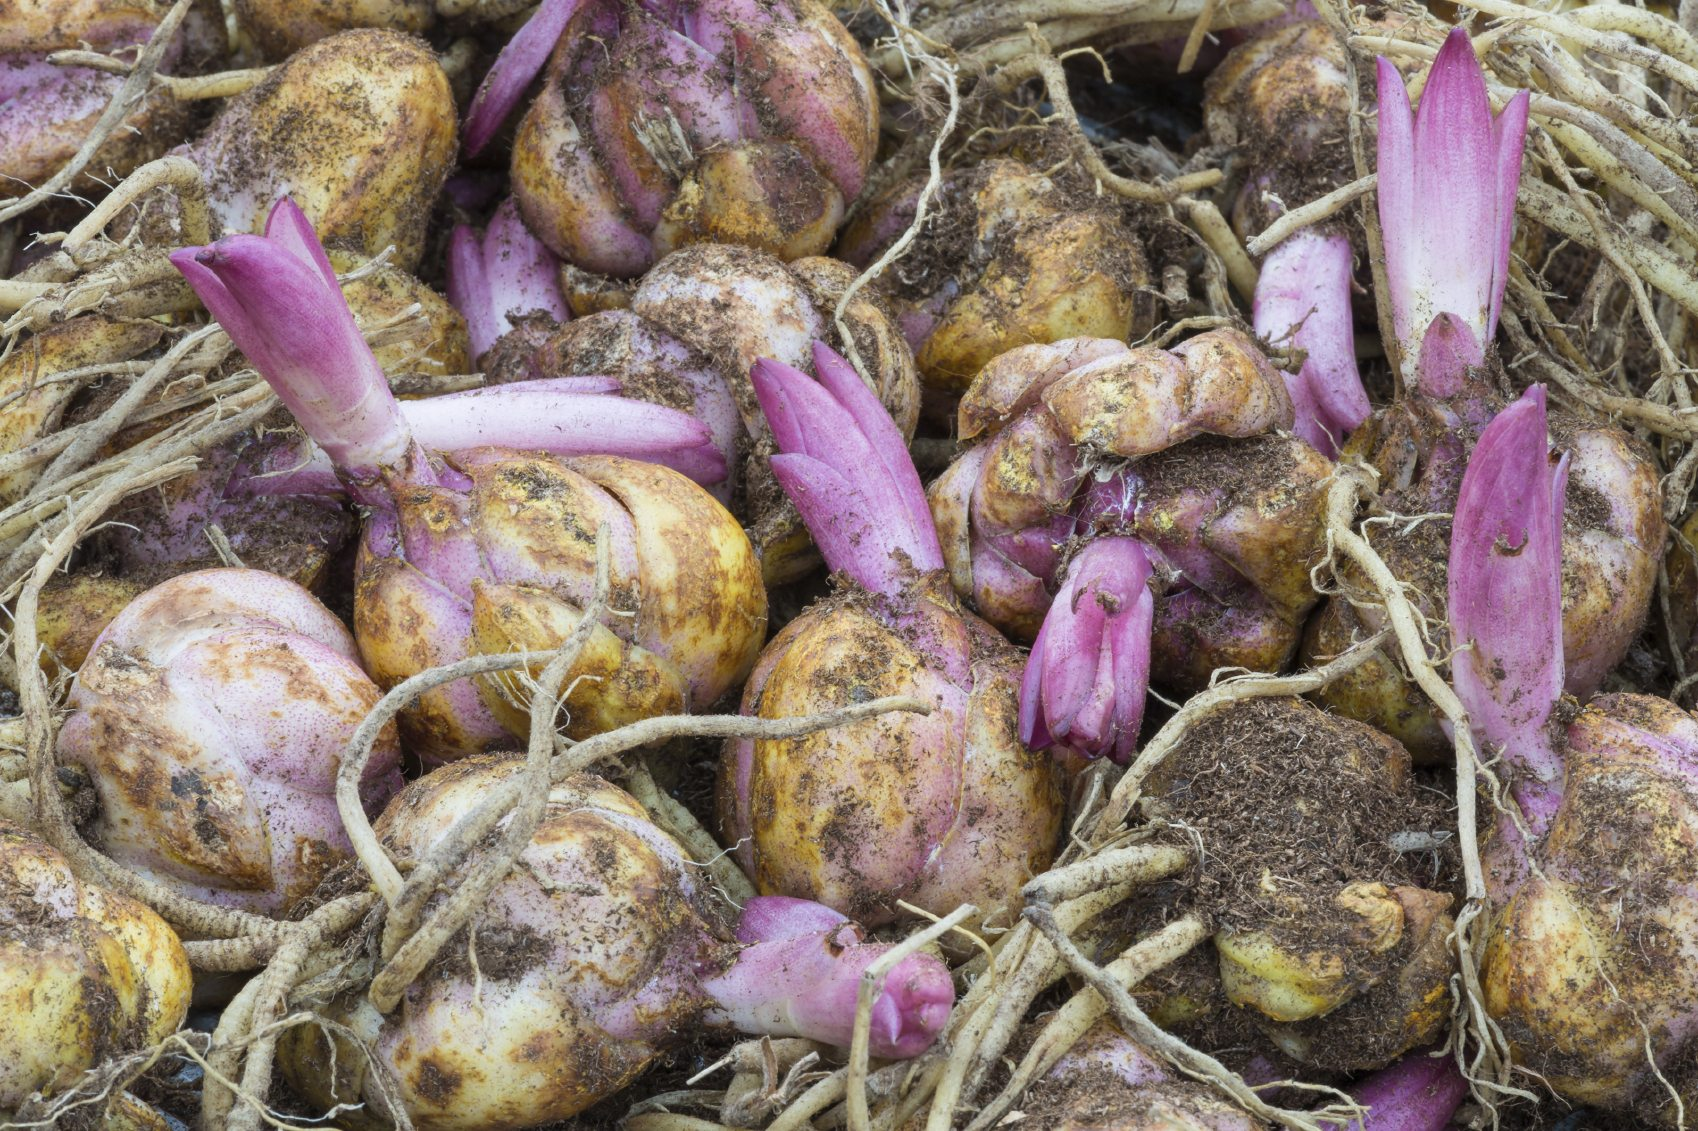 Storing Lily Bulbs How To Care For A Lily Plant Over Winter